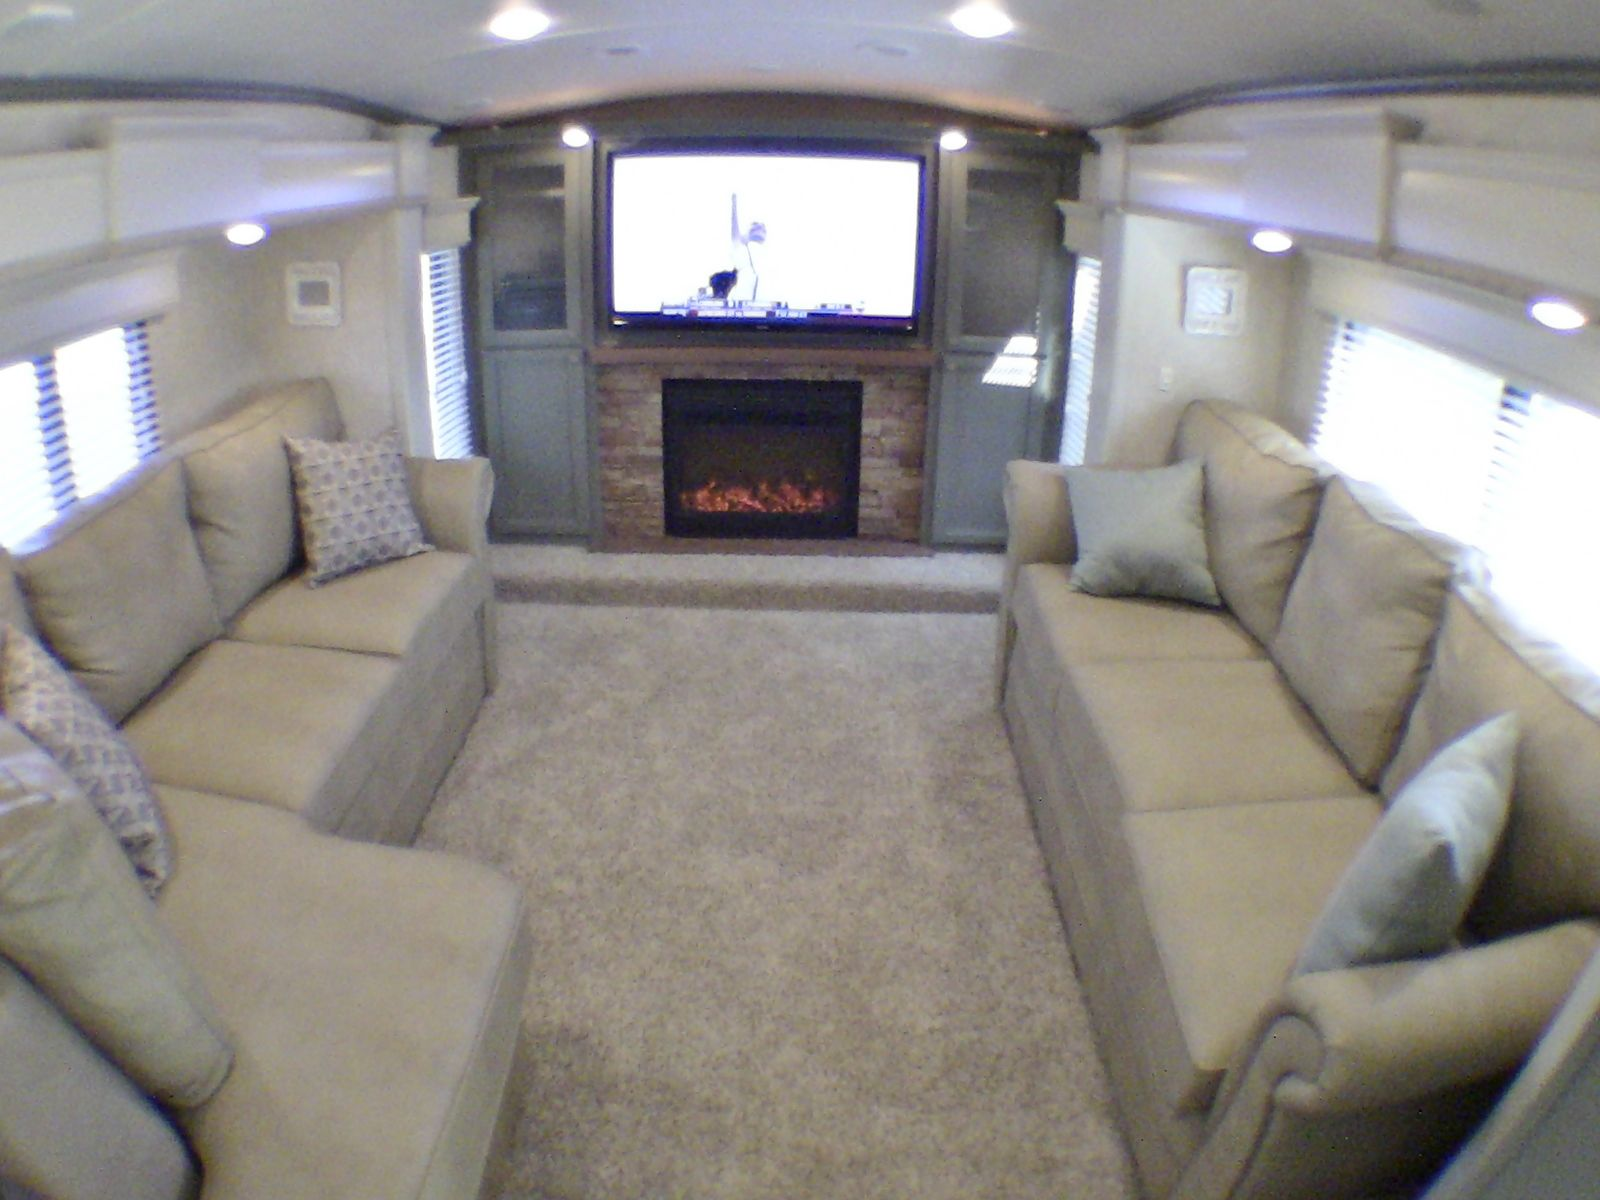 2014 DRV Tradition 390 Luxury Front Living Room 5th Wheel 5 Slides Fully Lo